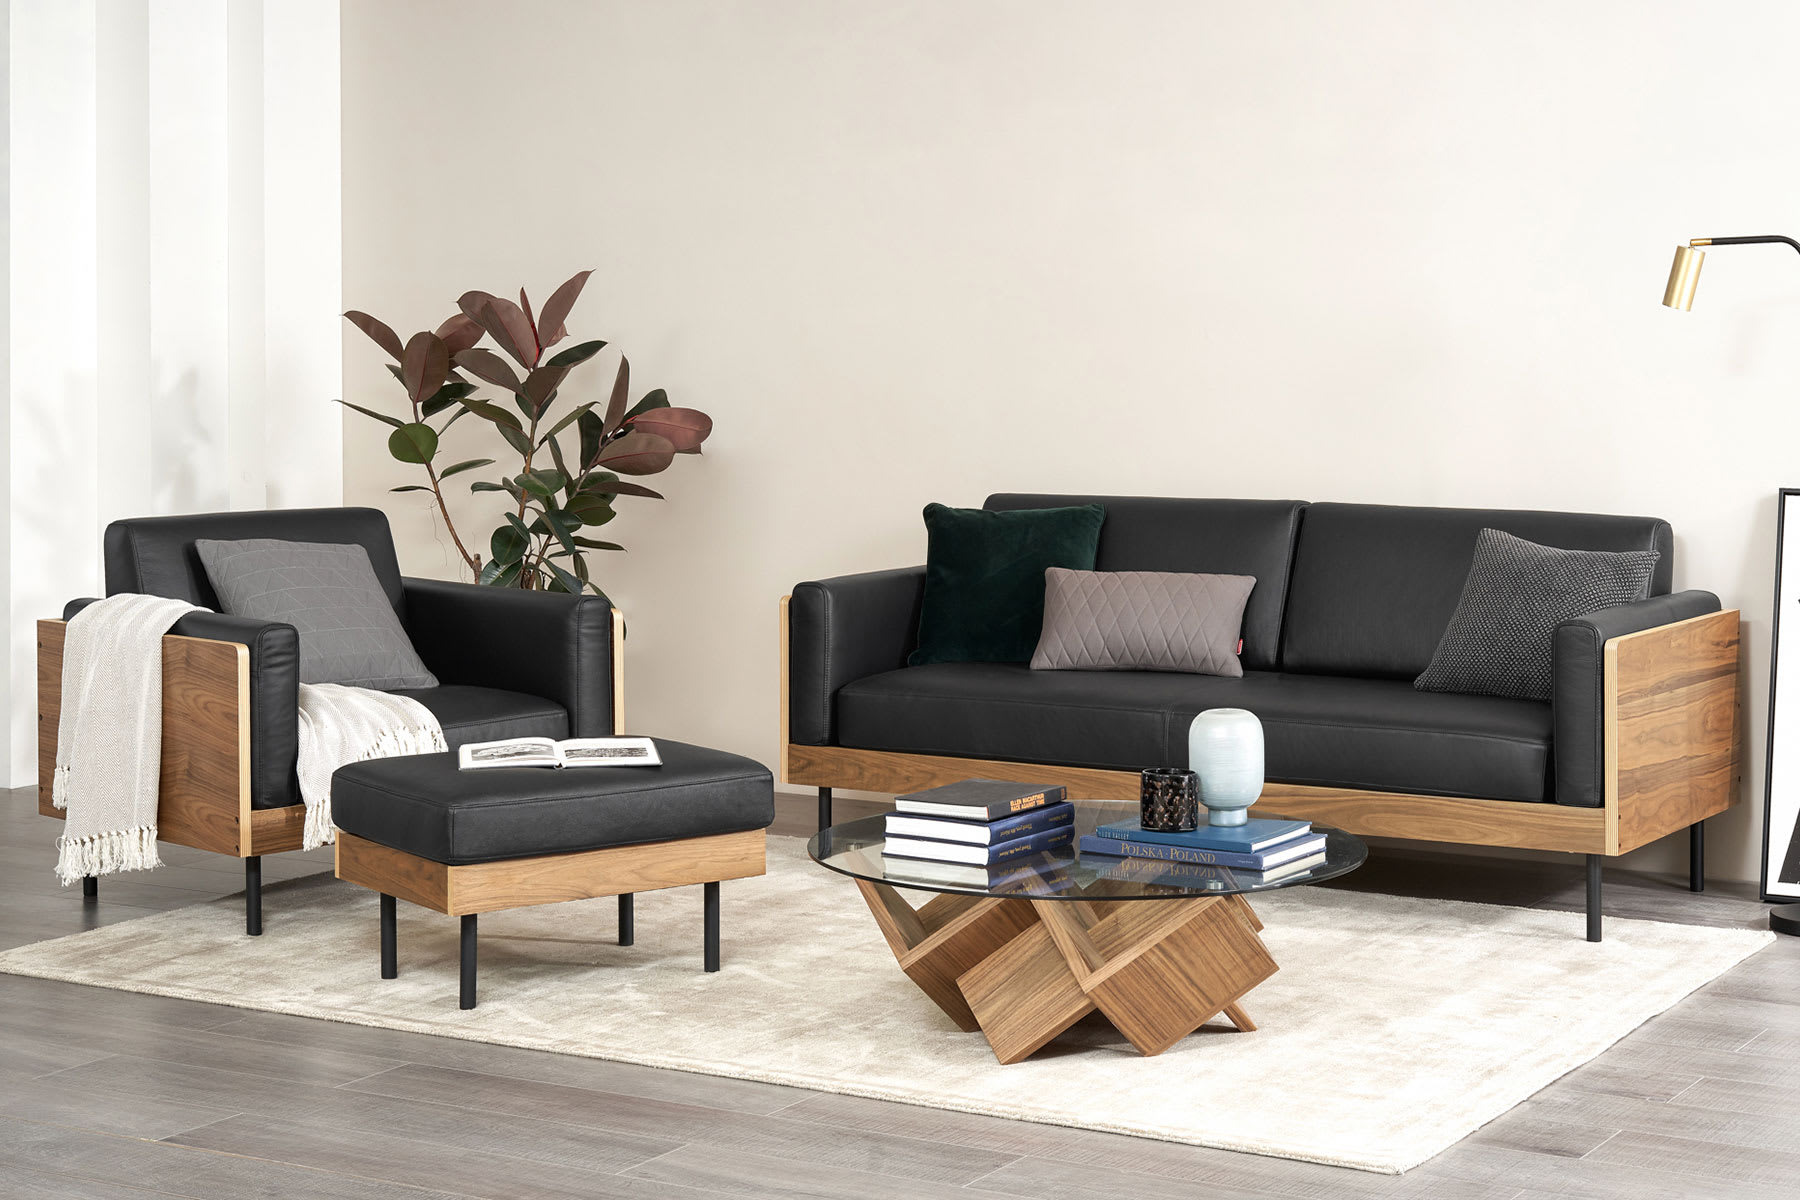 light and airy living room furniture with sofa in black leather, geometric glass coffee table and white floor rug